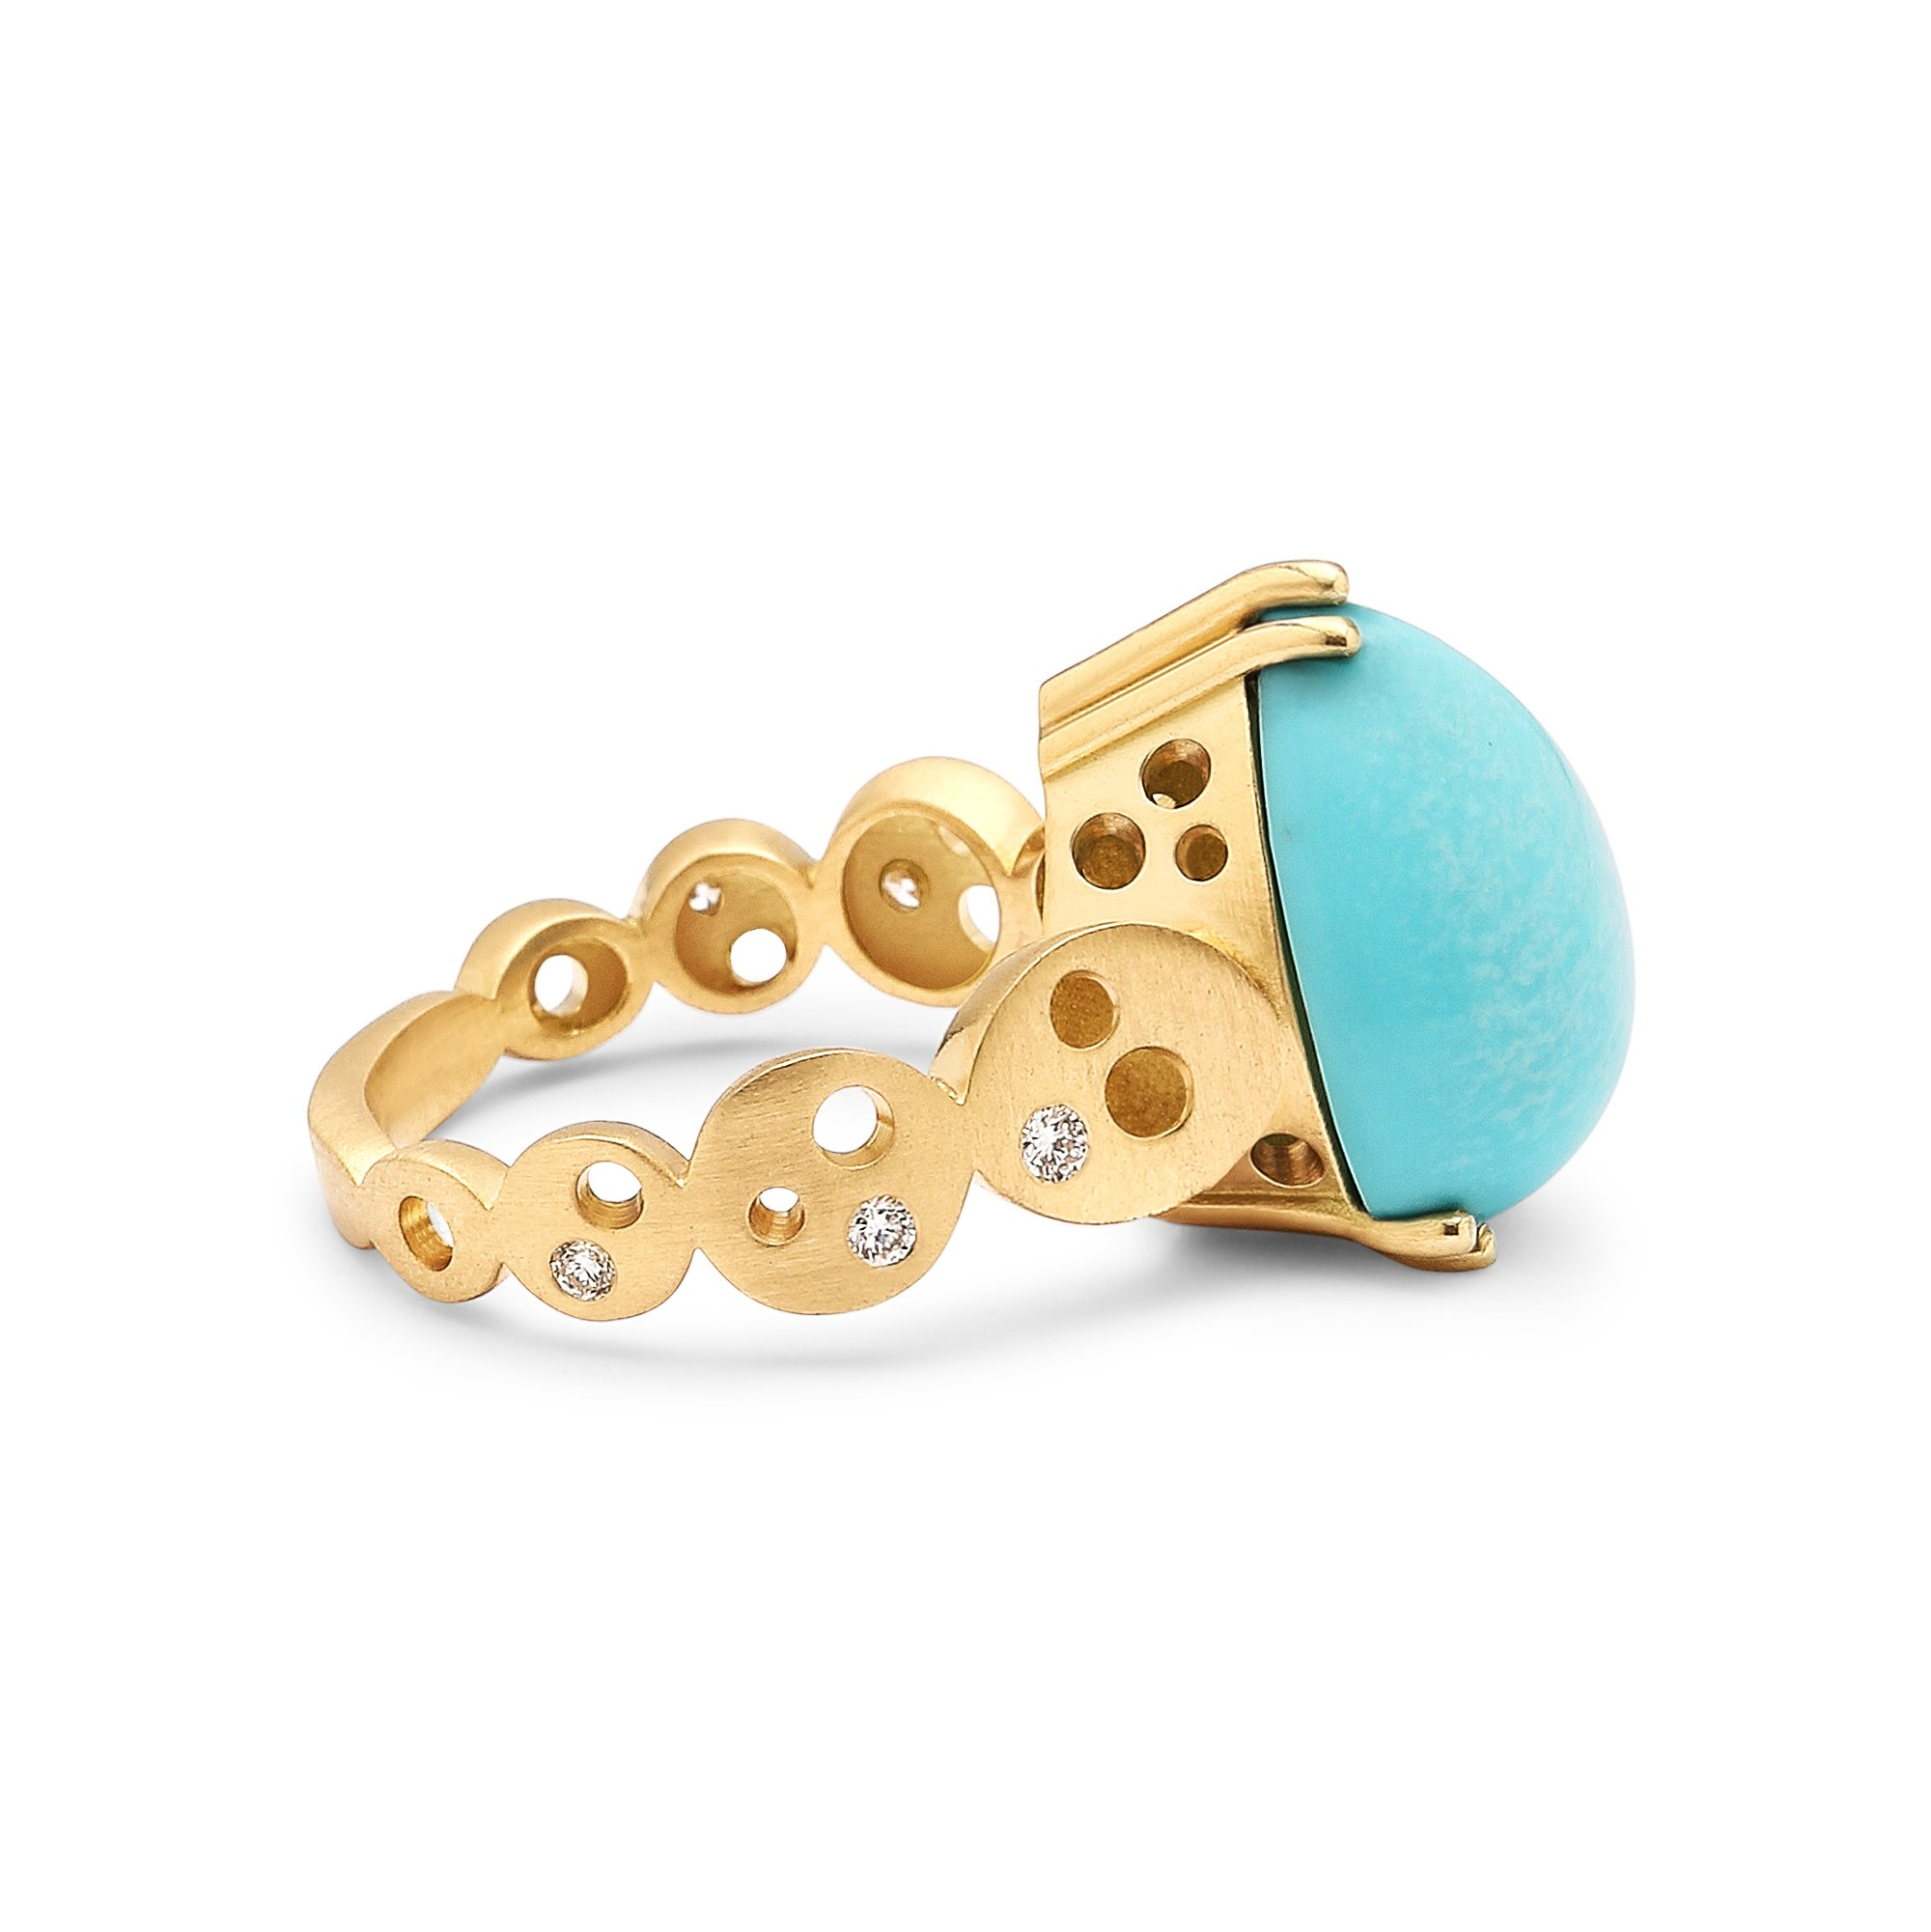 Pear-Shaped Sleeping Beauty Turquoise & Coin Band Ring - alternate